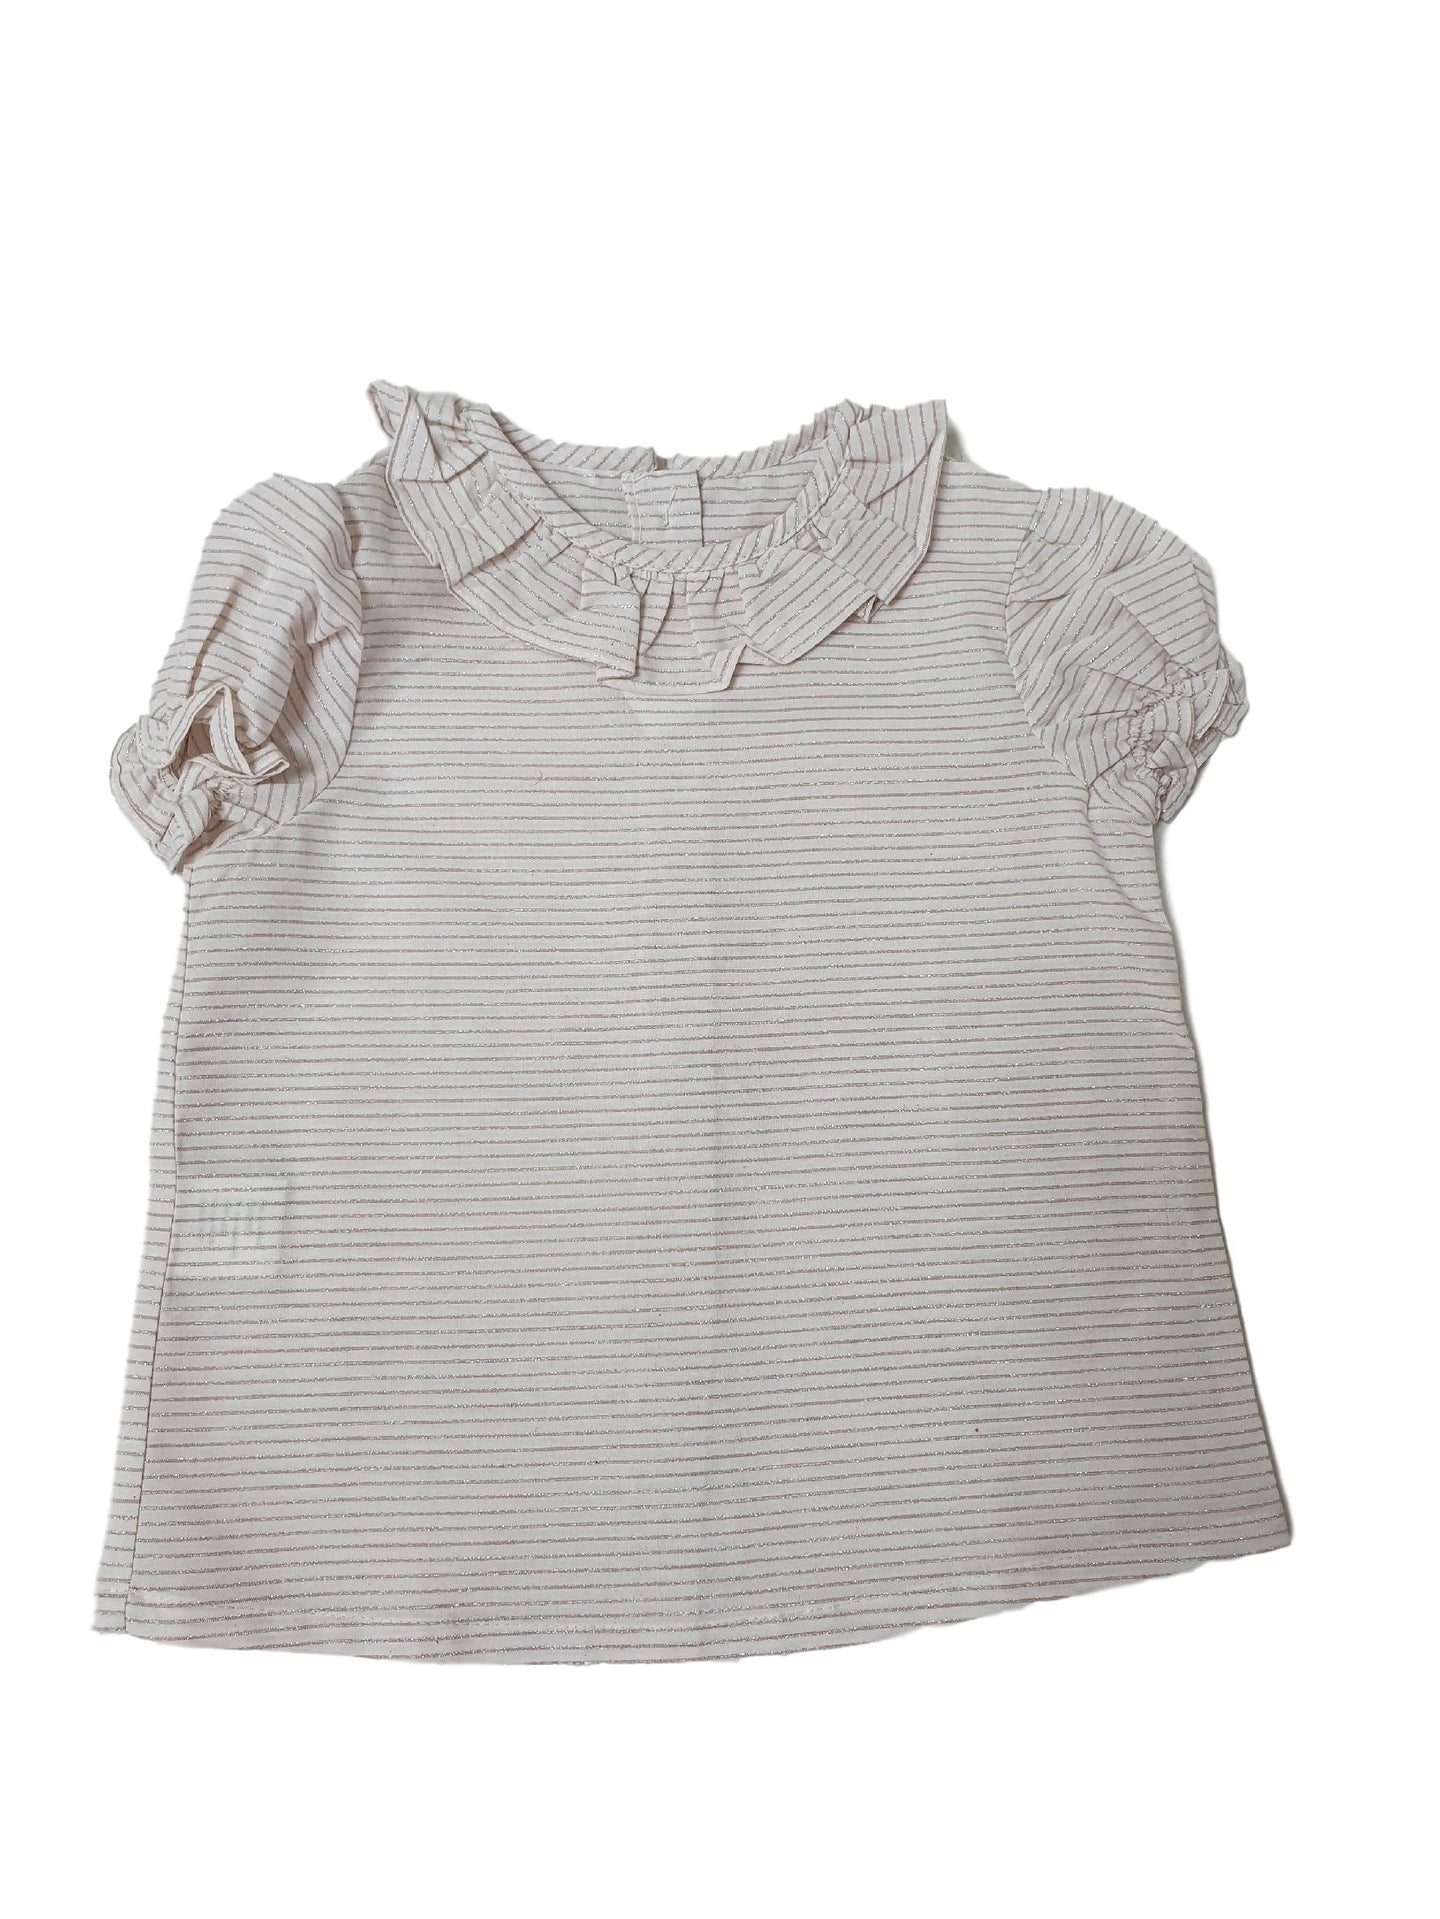 AMAIA outlet girl blouse 6m/12m/2yo/3yo